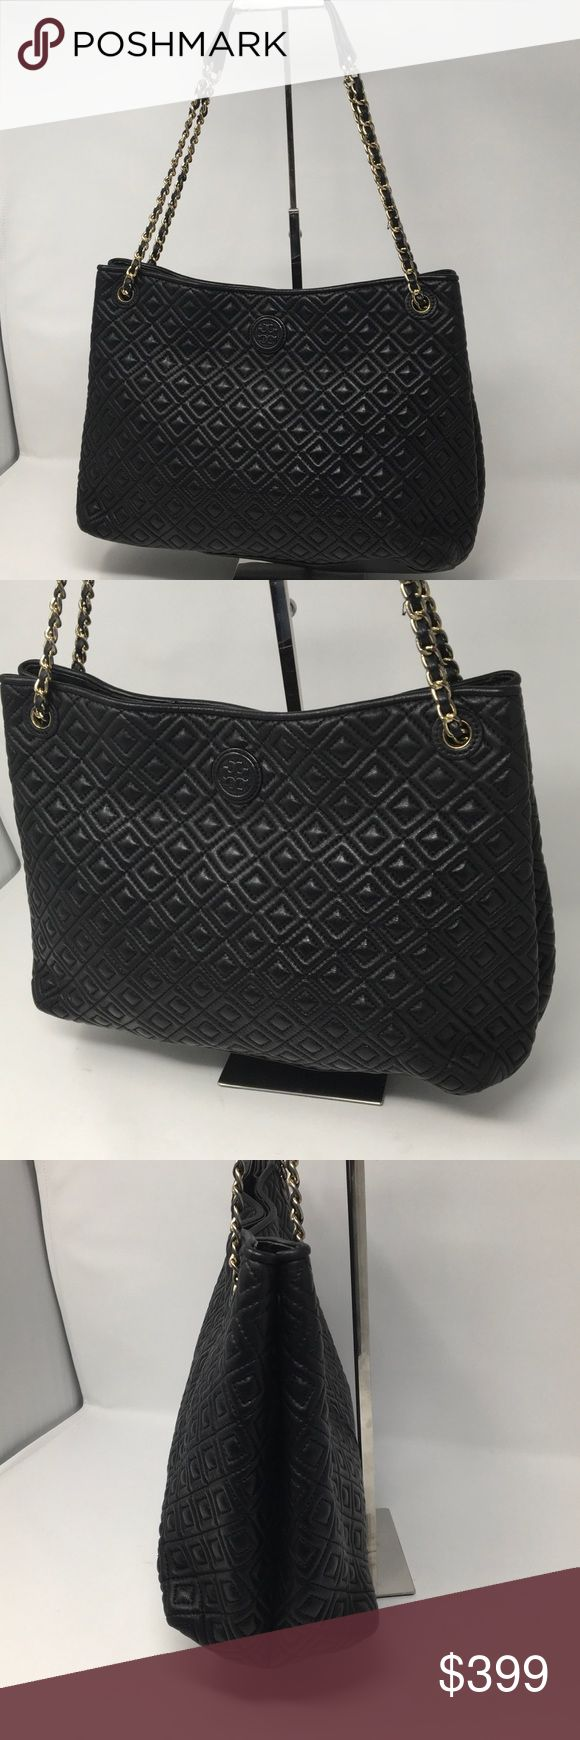 """Tory Burch Marion Diamond Quilted Shoulder Bag Very good condition see last photo slight wear to edging on inside rim of bag. Includes a new non Tory dustbag.  13""""L x 5.5""""H x 9.5""""W  *Black Leather. *Center compartment with magnetic snap. *Interior center zip pocket. *Interior front snap pockets with two open pockets at front. *Interior back zipper pocket. *Drop length when a handle is doubled as shorter shoulder strap: 10"""" *Drop length handle is 22"""" Tory Burch Bags Shoulder Bags"""